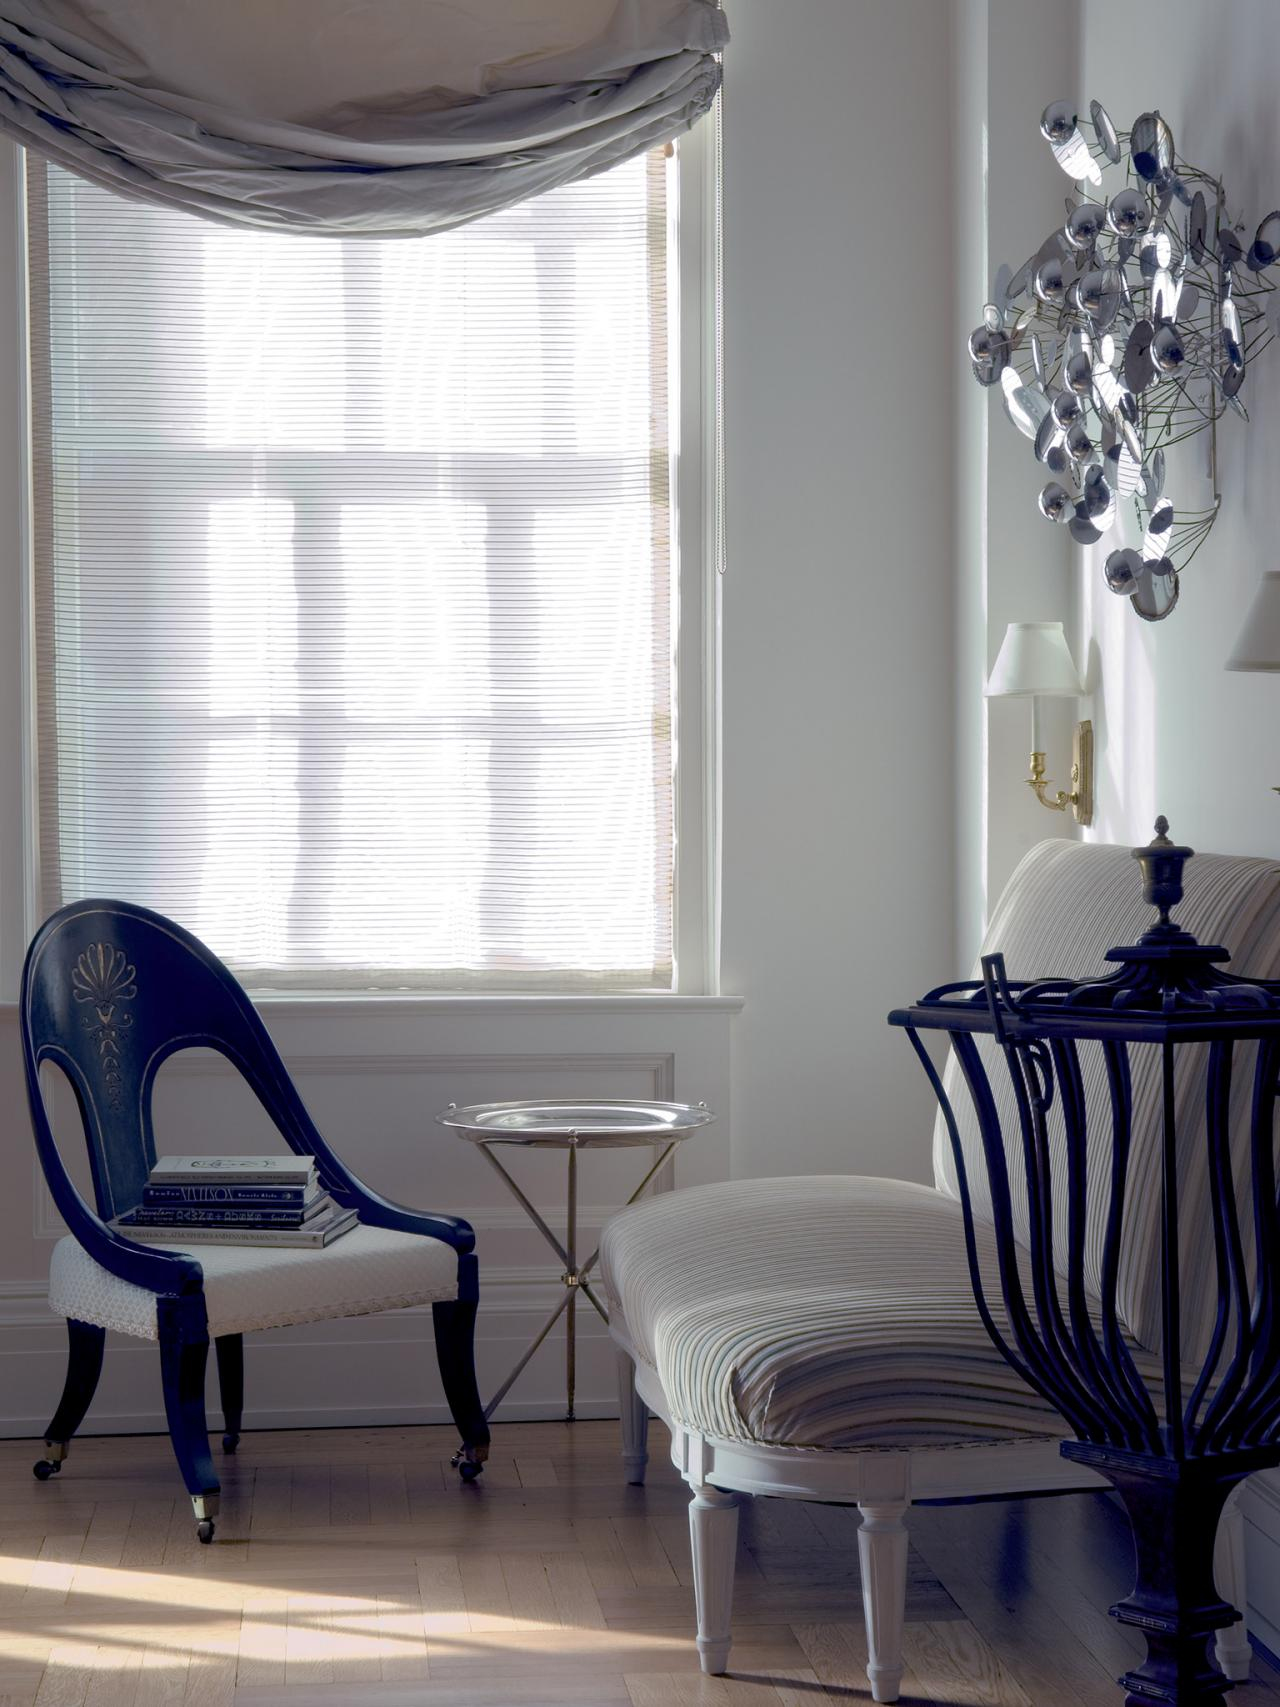 CI-Farrow-And-Ball-The-Art-of-Color-pg103_spoon-back-chair-and-sculpture_3x4_jpg_rend_hgtvcom_1280_1707.jpg